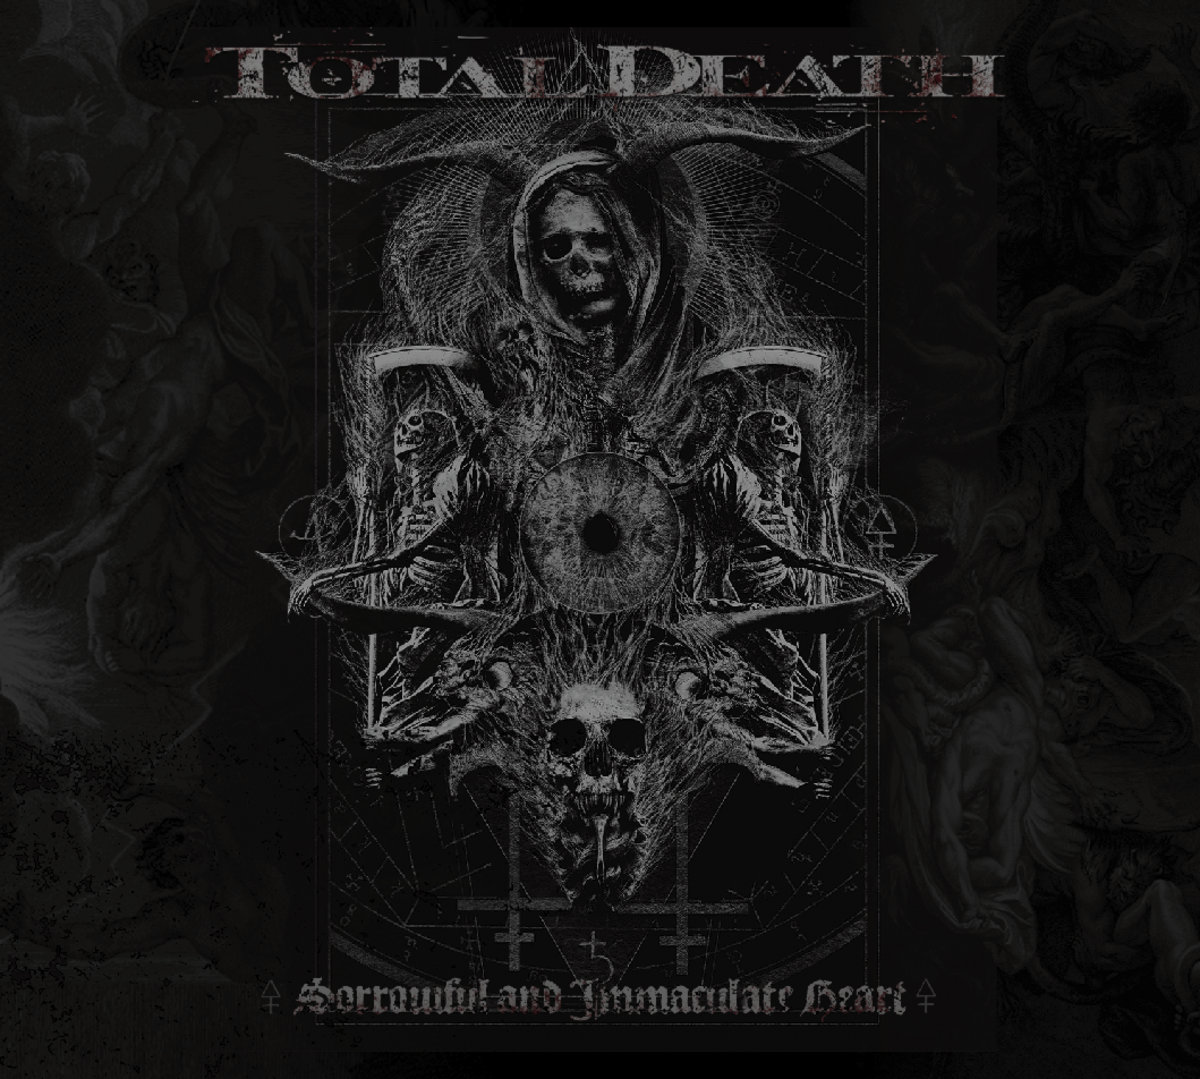 Total Death - Sorrowful and Immaculate Heart